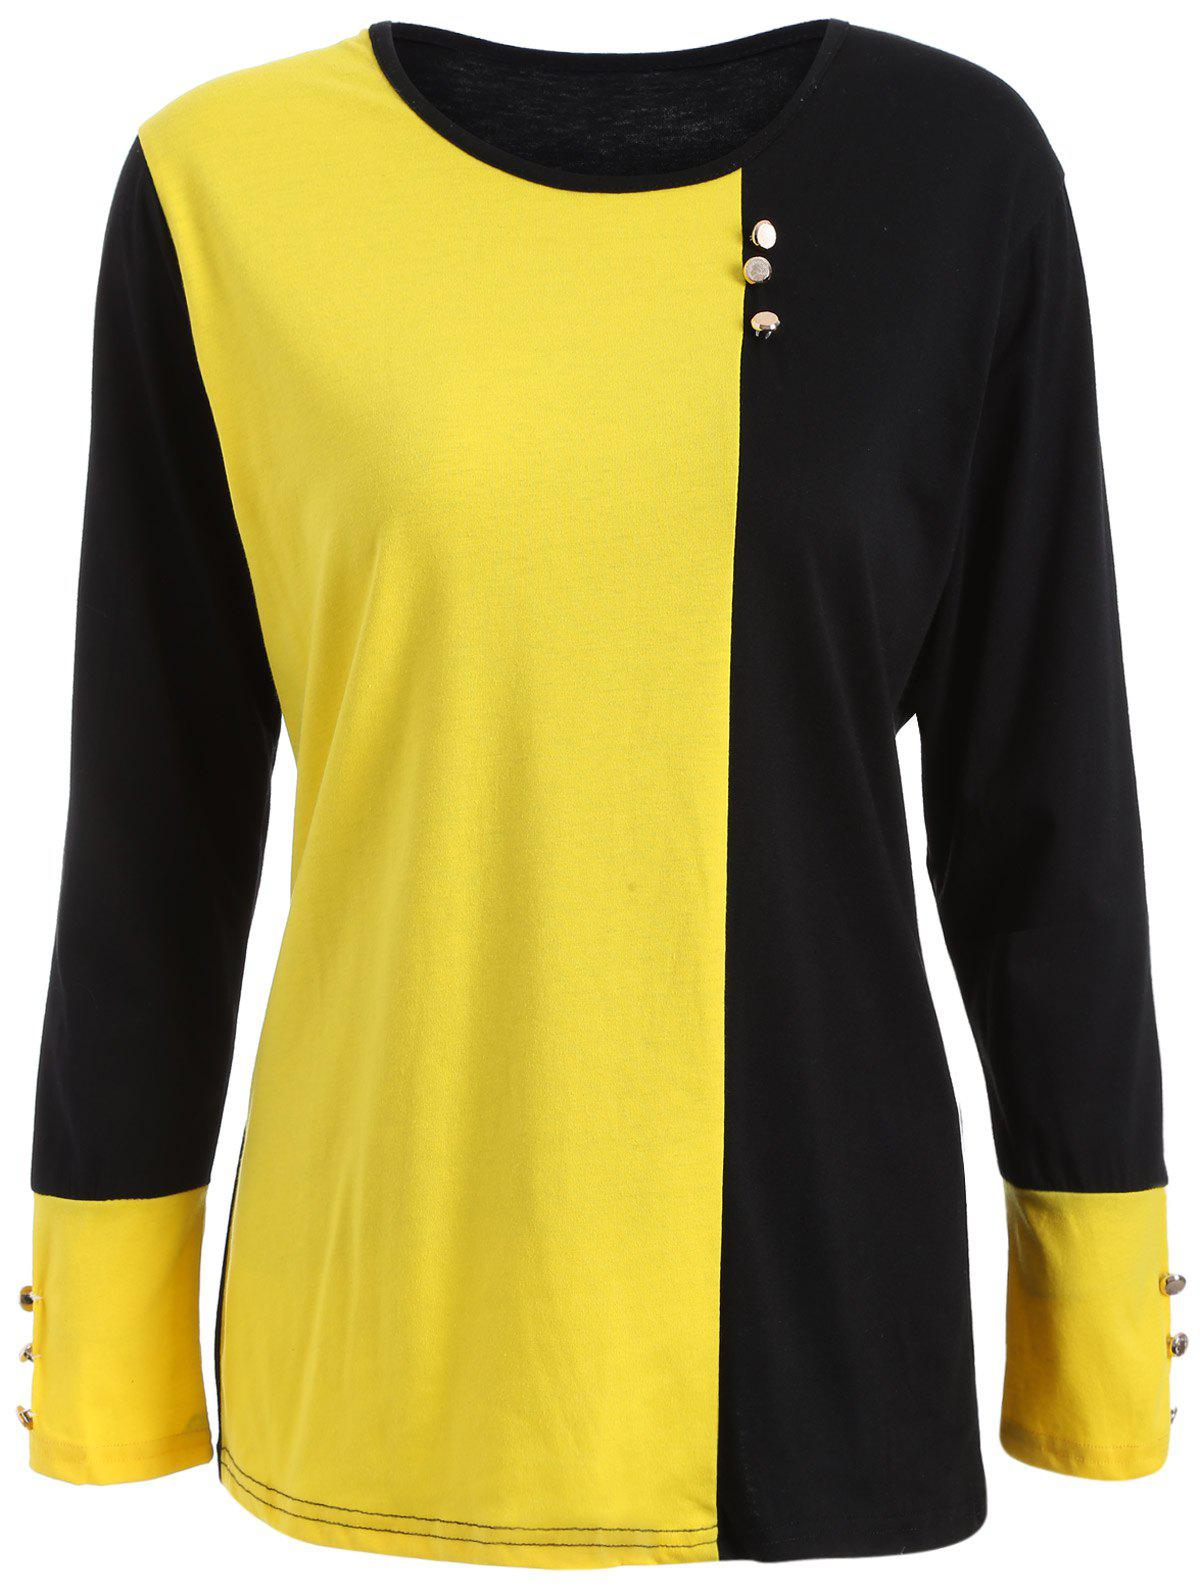 Plus Size Panel T-Shirt with Buttons - YELLOW 2XL